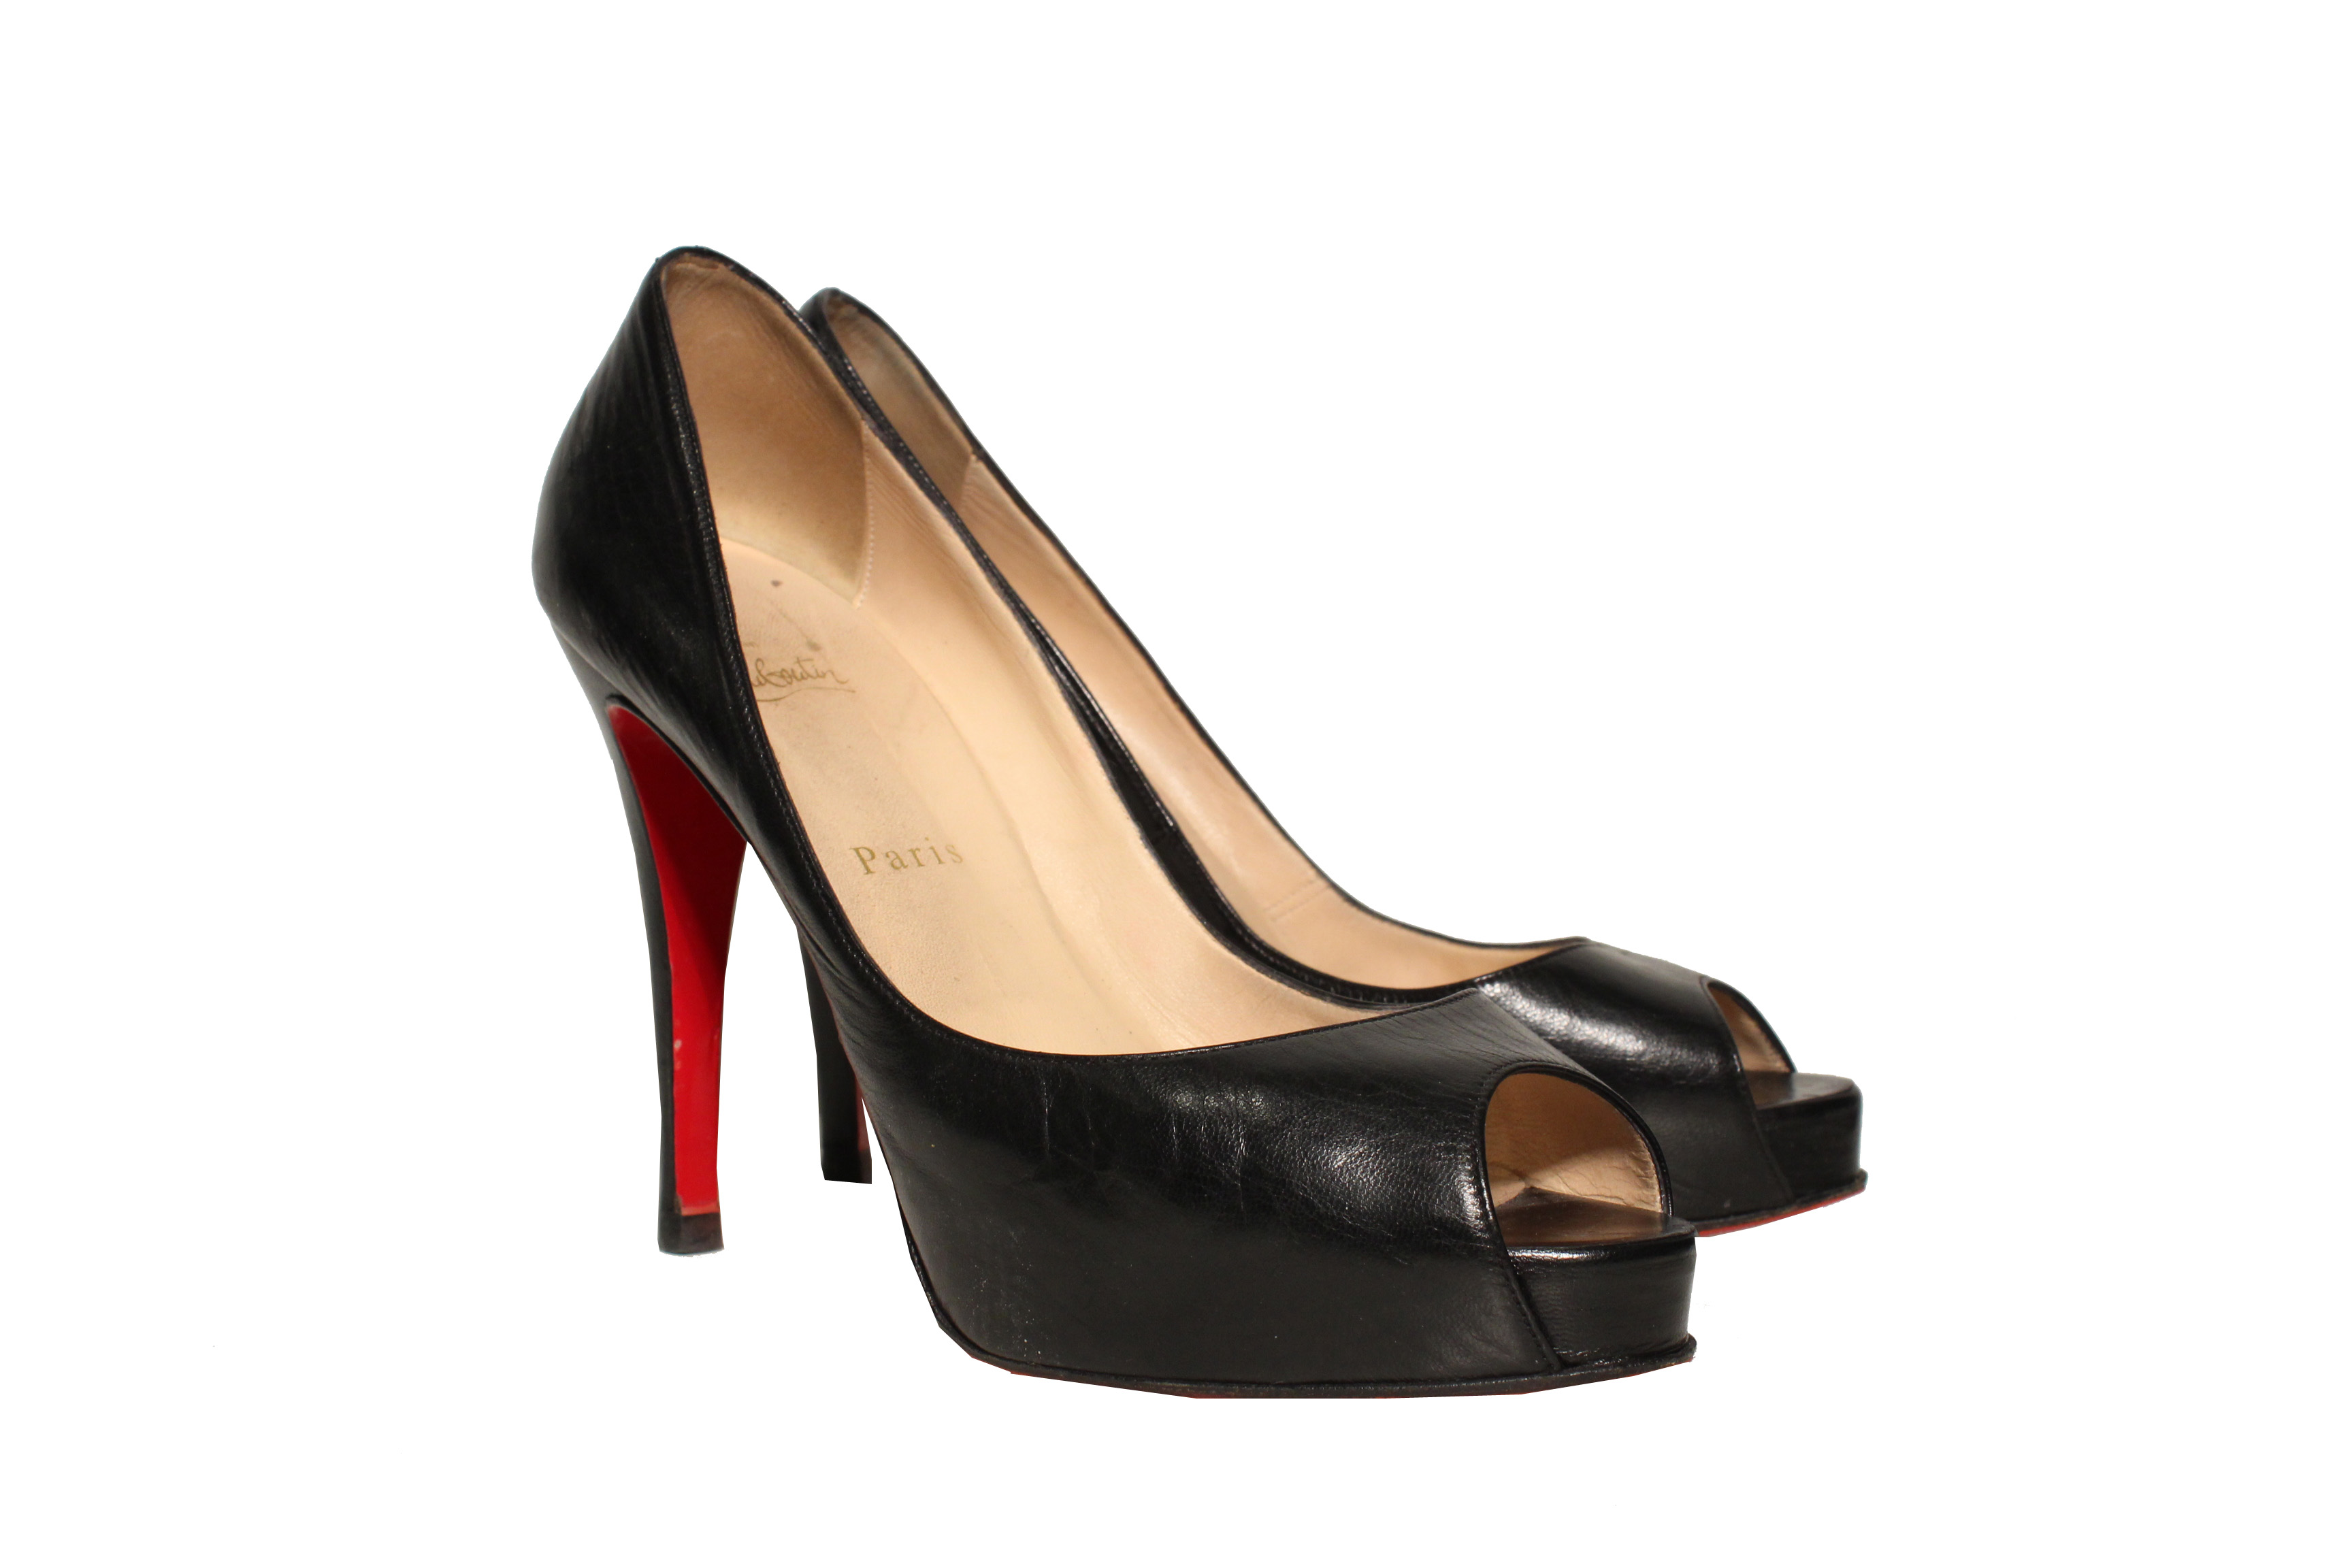 christian louboutin very prive beige peep toe pumps